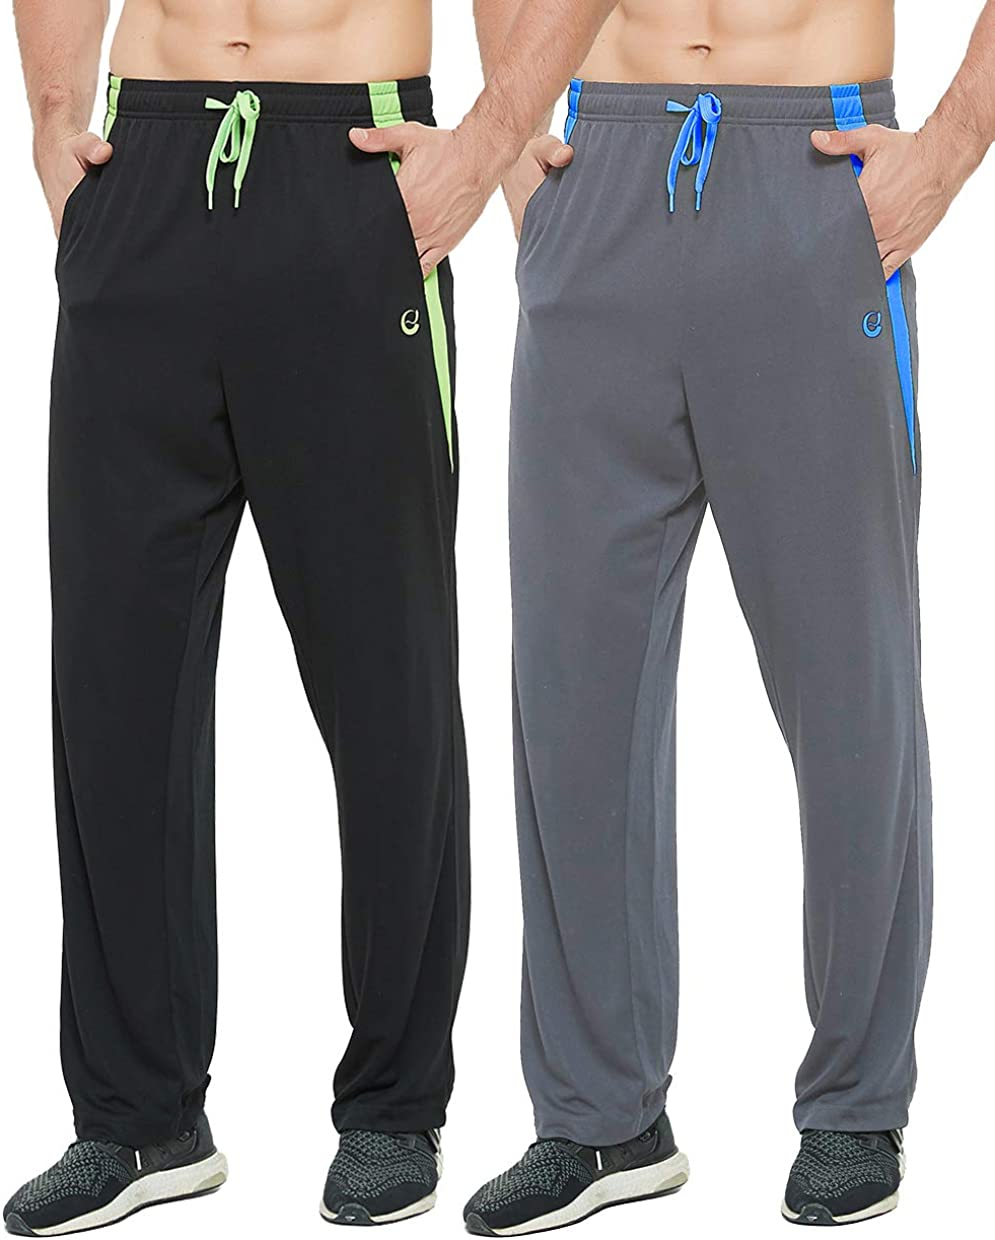 E-SURPA Ultra-Cheap Deals New Shipping Free Shipping Men's Athletic Pant with Open Bottom Sweatpants Pockets